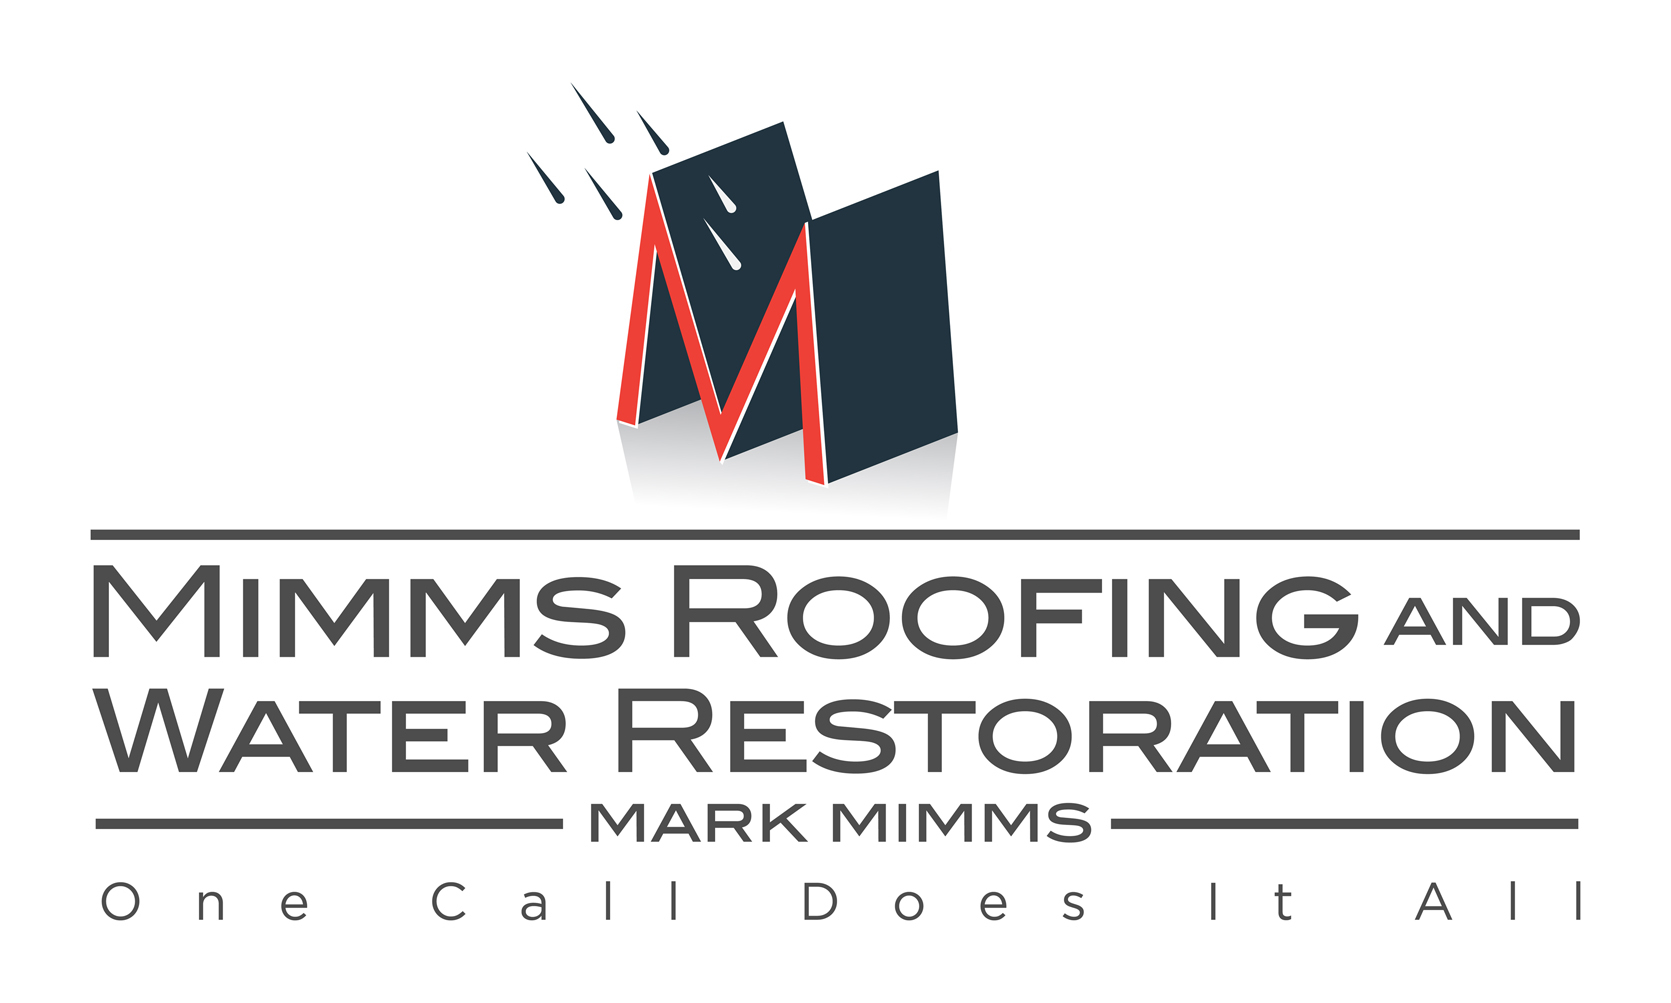 image of the Mimms Roofing and Water Restoration